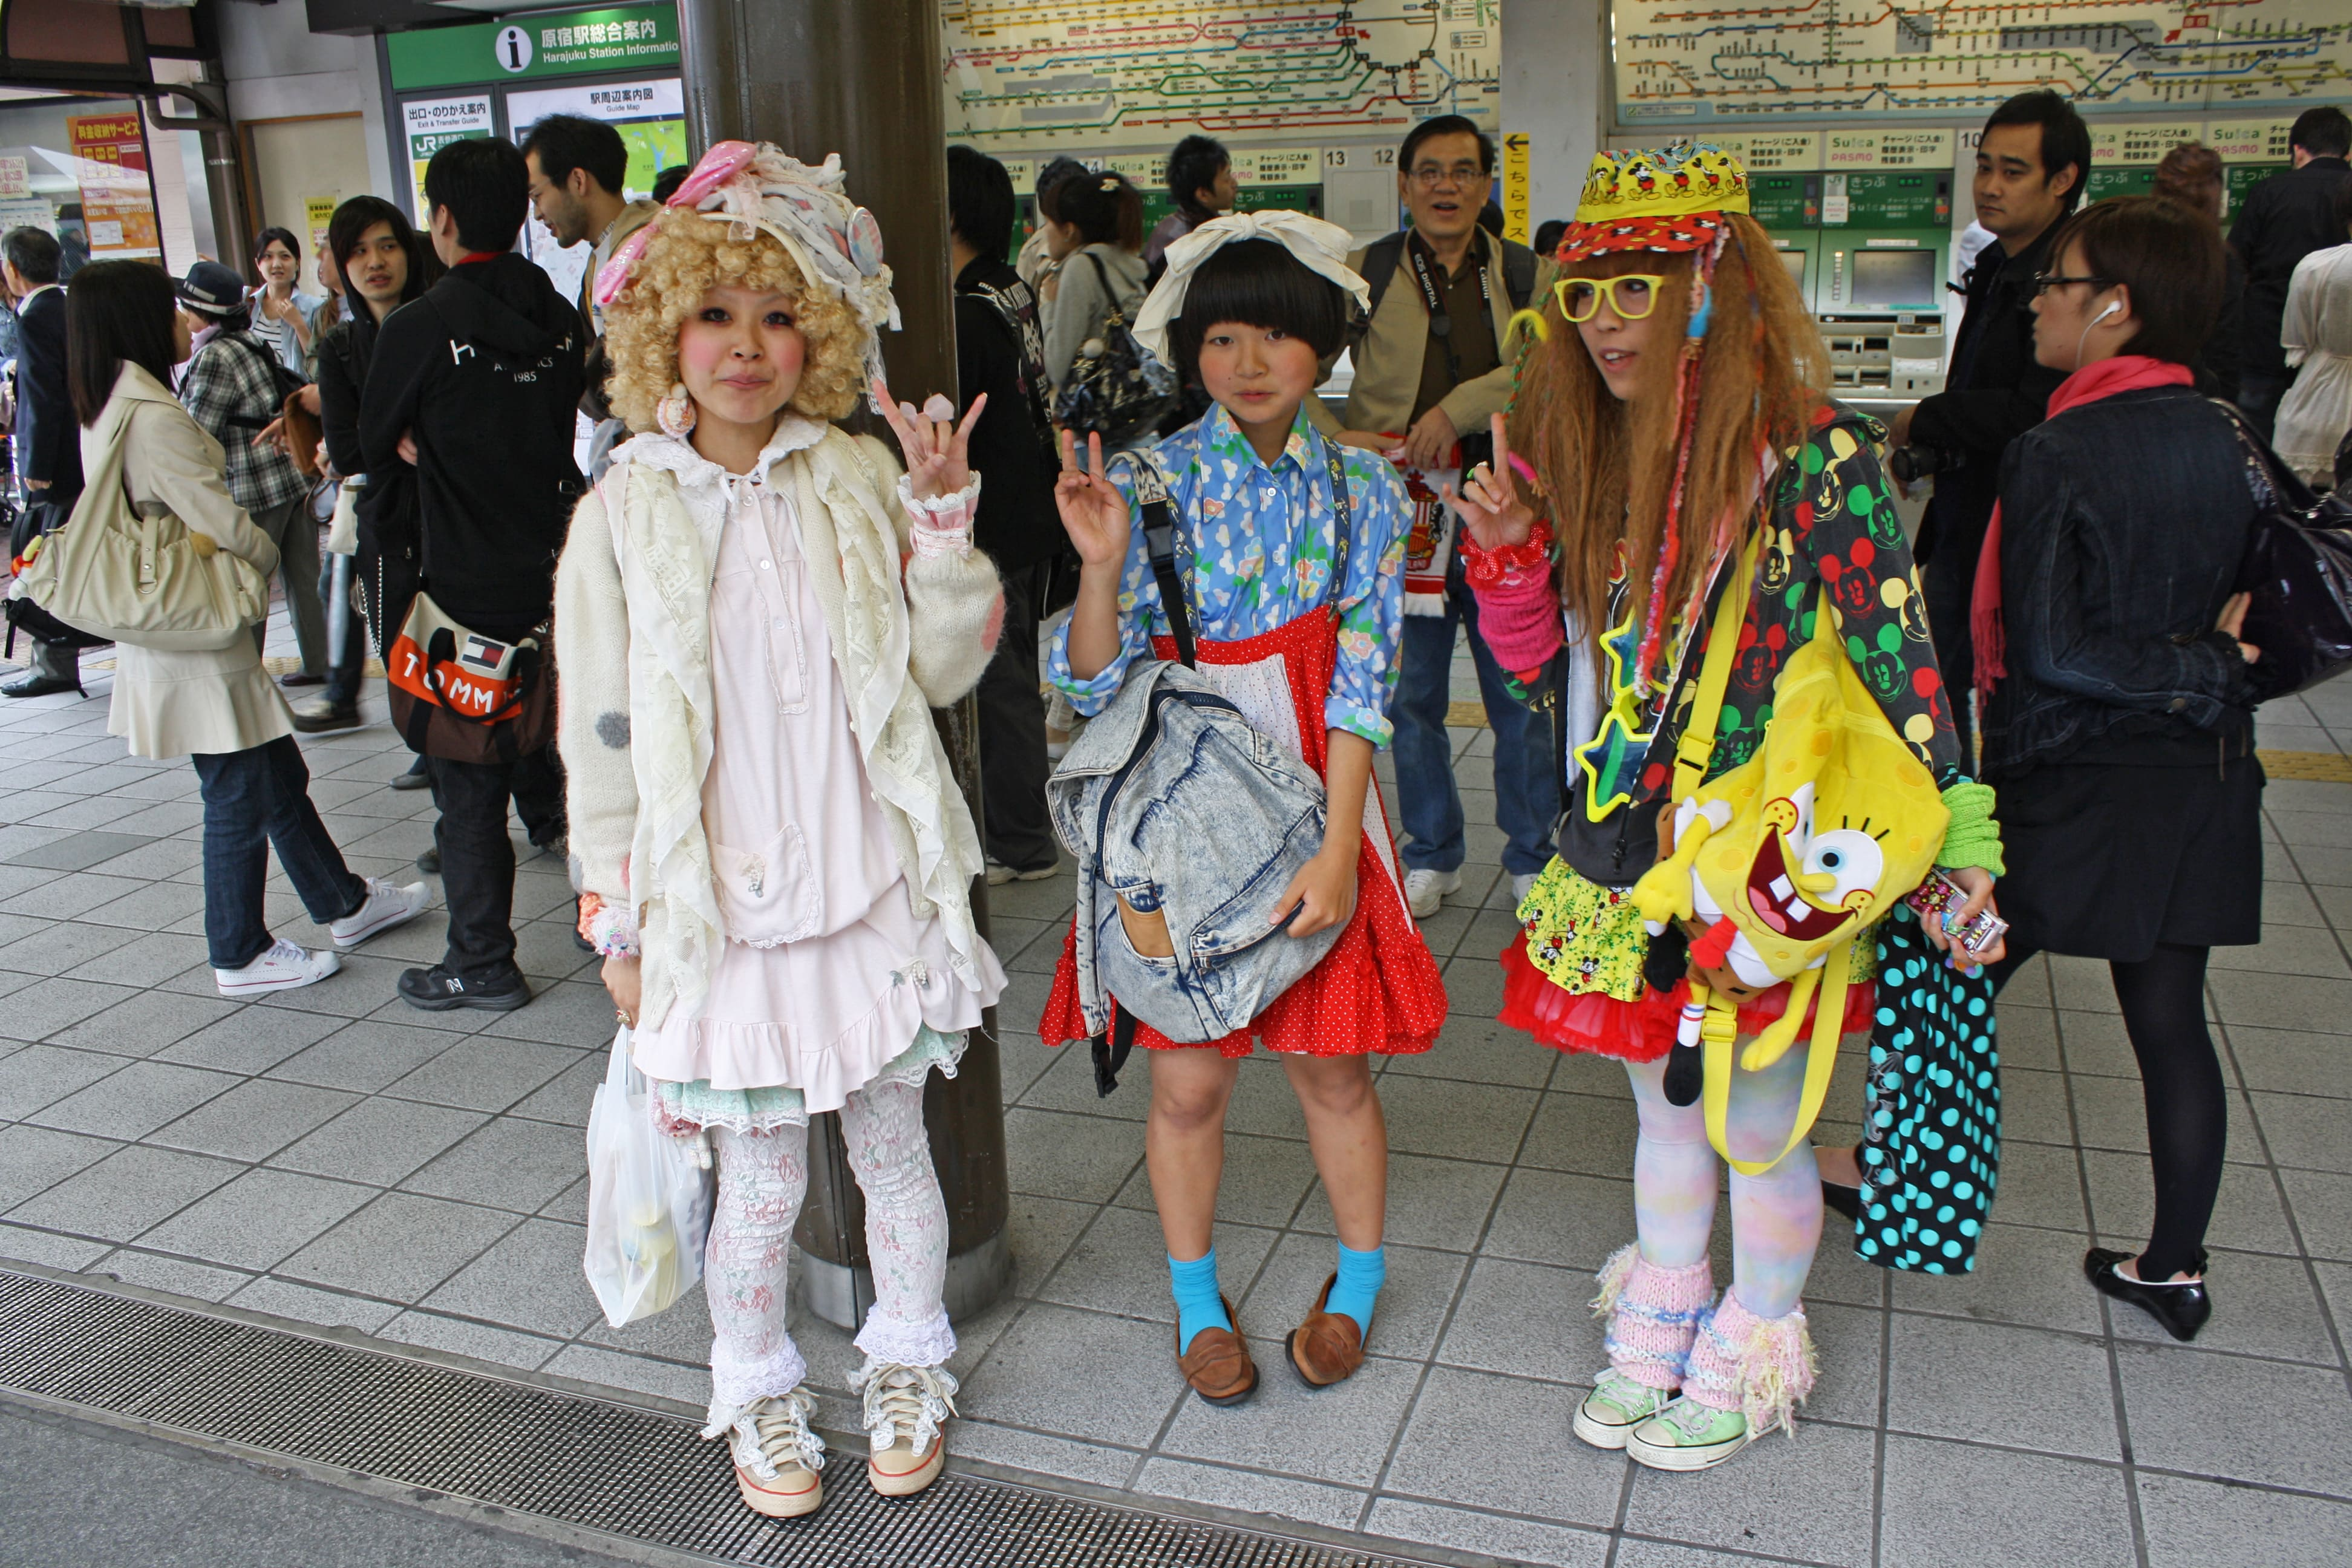 Harajuku's Takeshita Dori is one of the best Tokyo sightseeing spots